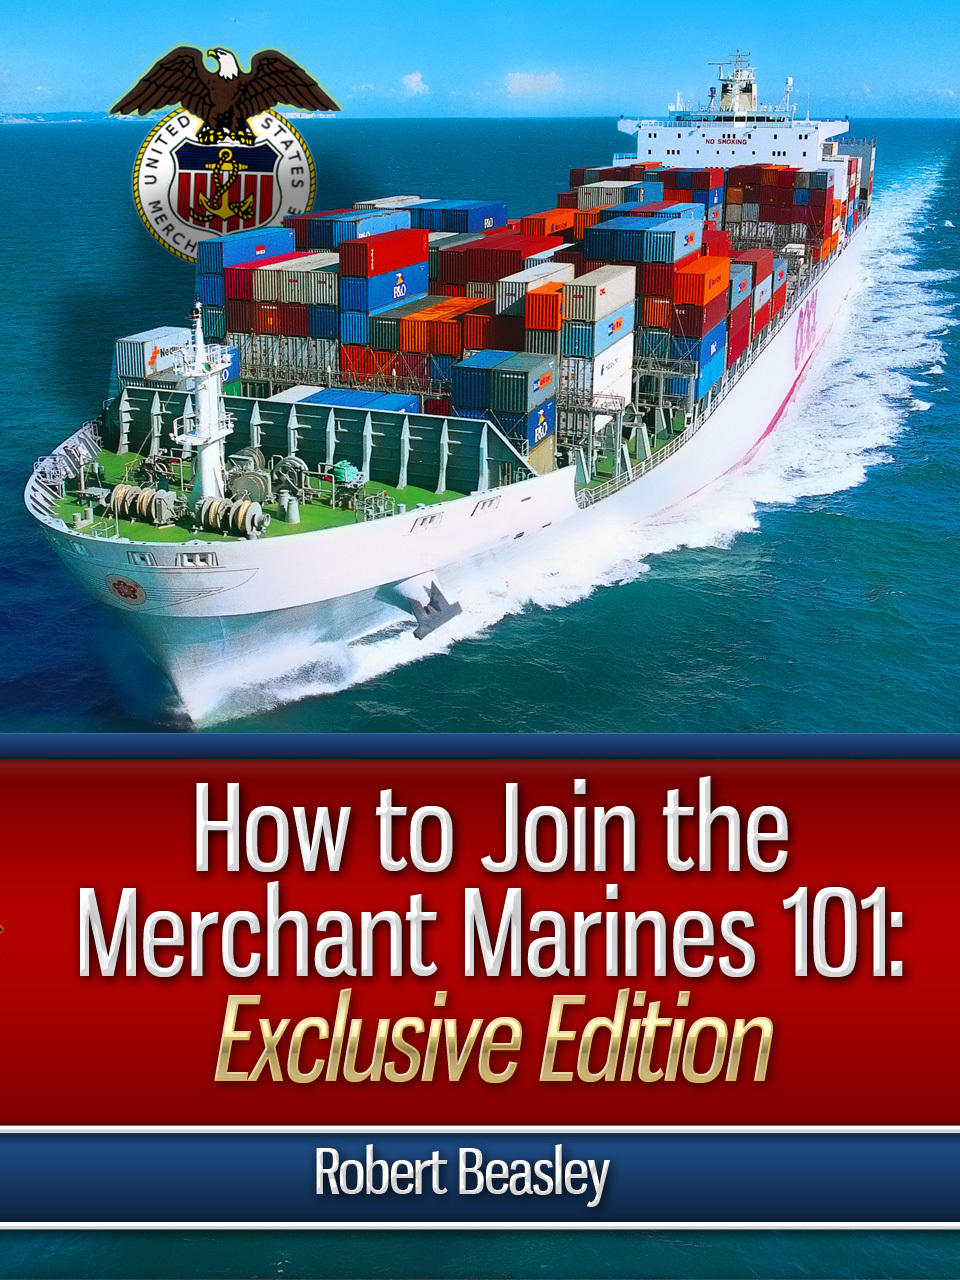 How To Join The Merchant Marines 101: The Merchant Mariners Hiring Guide